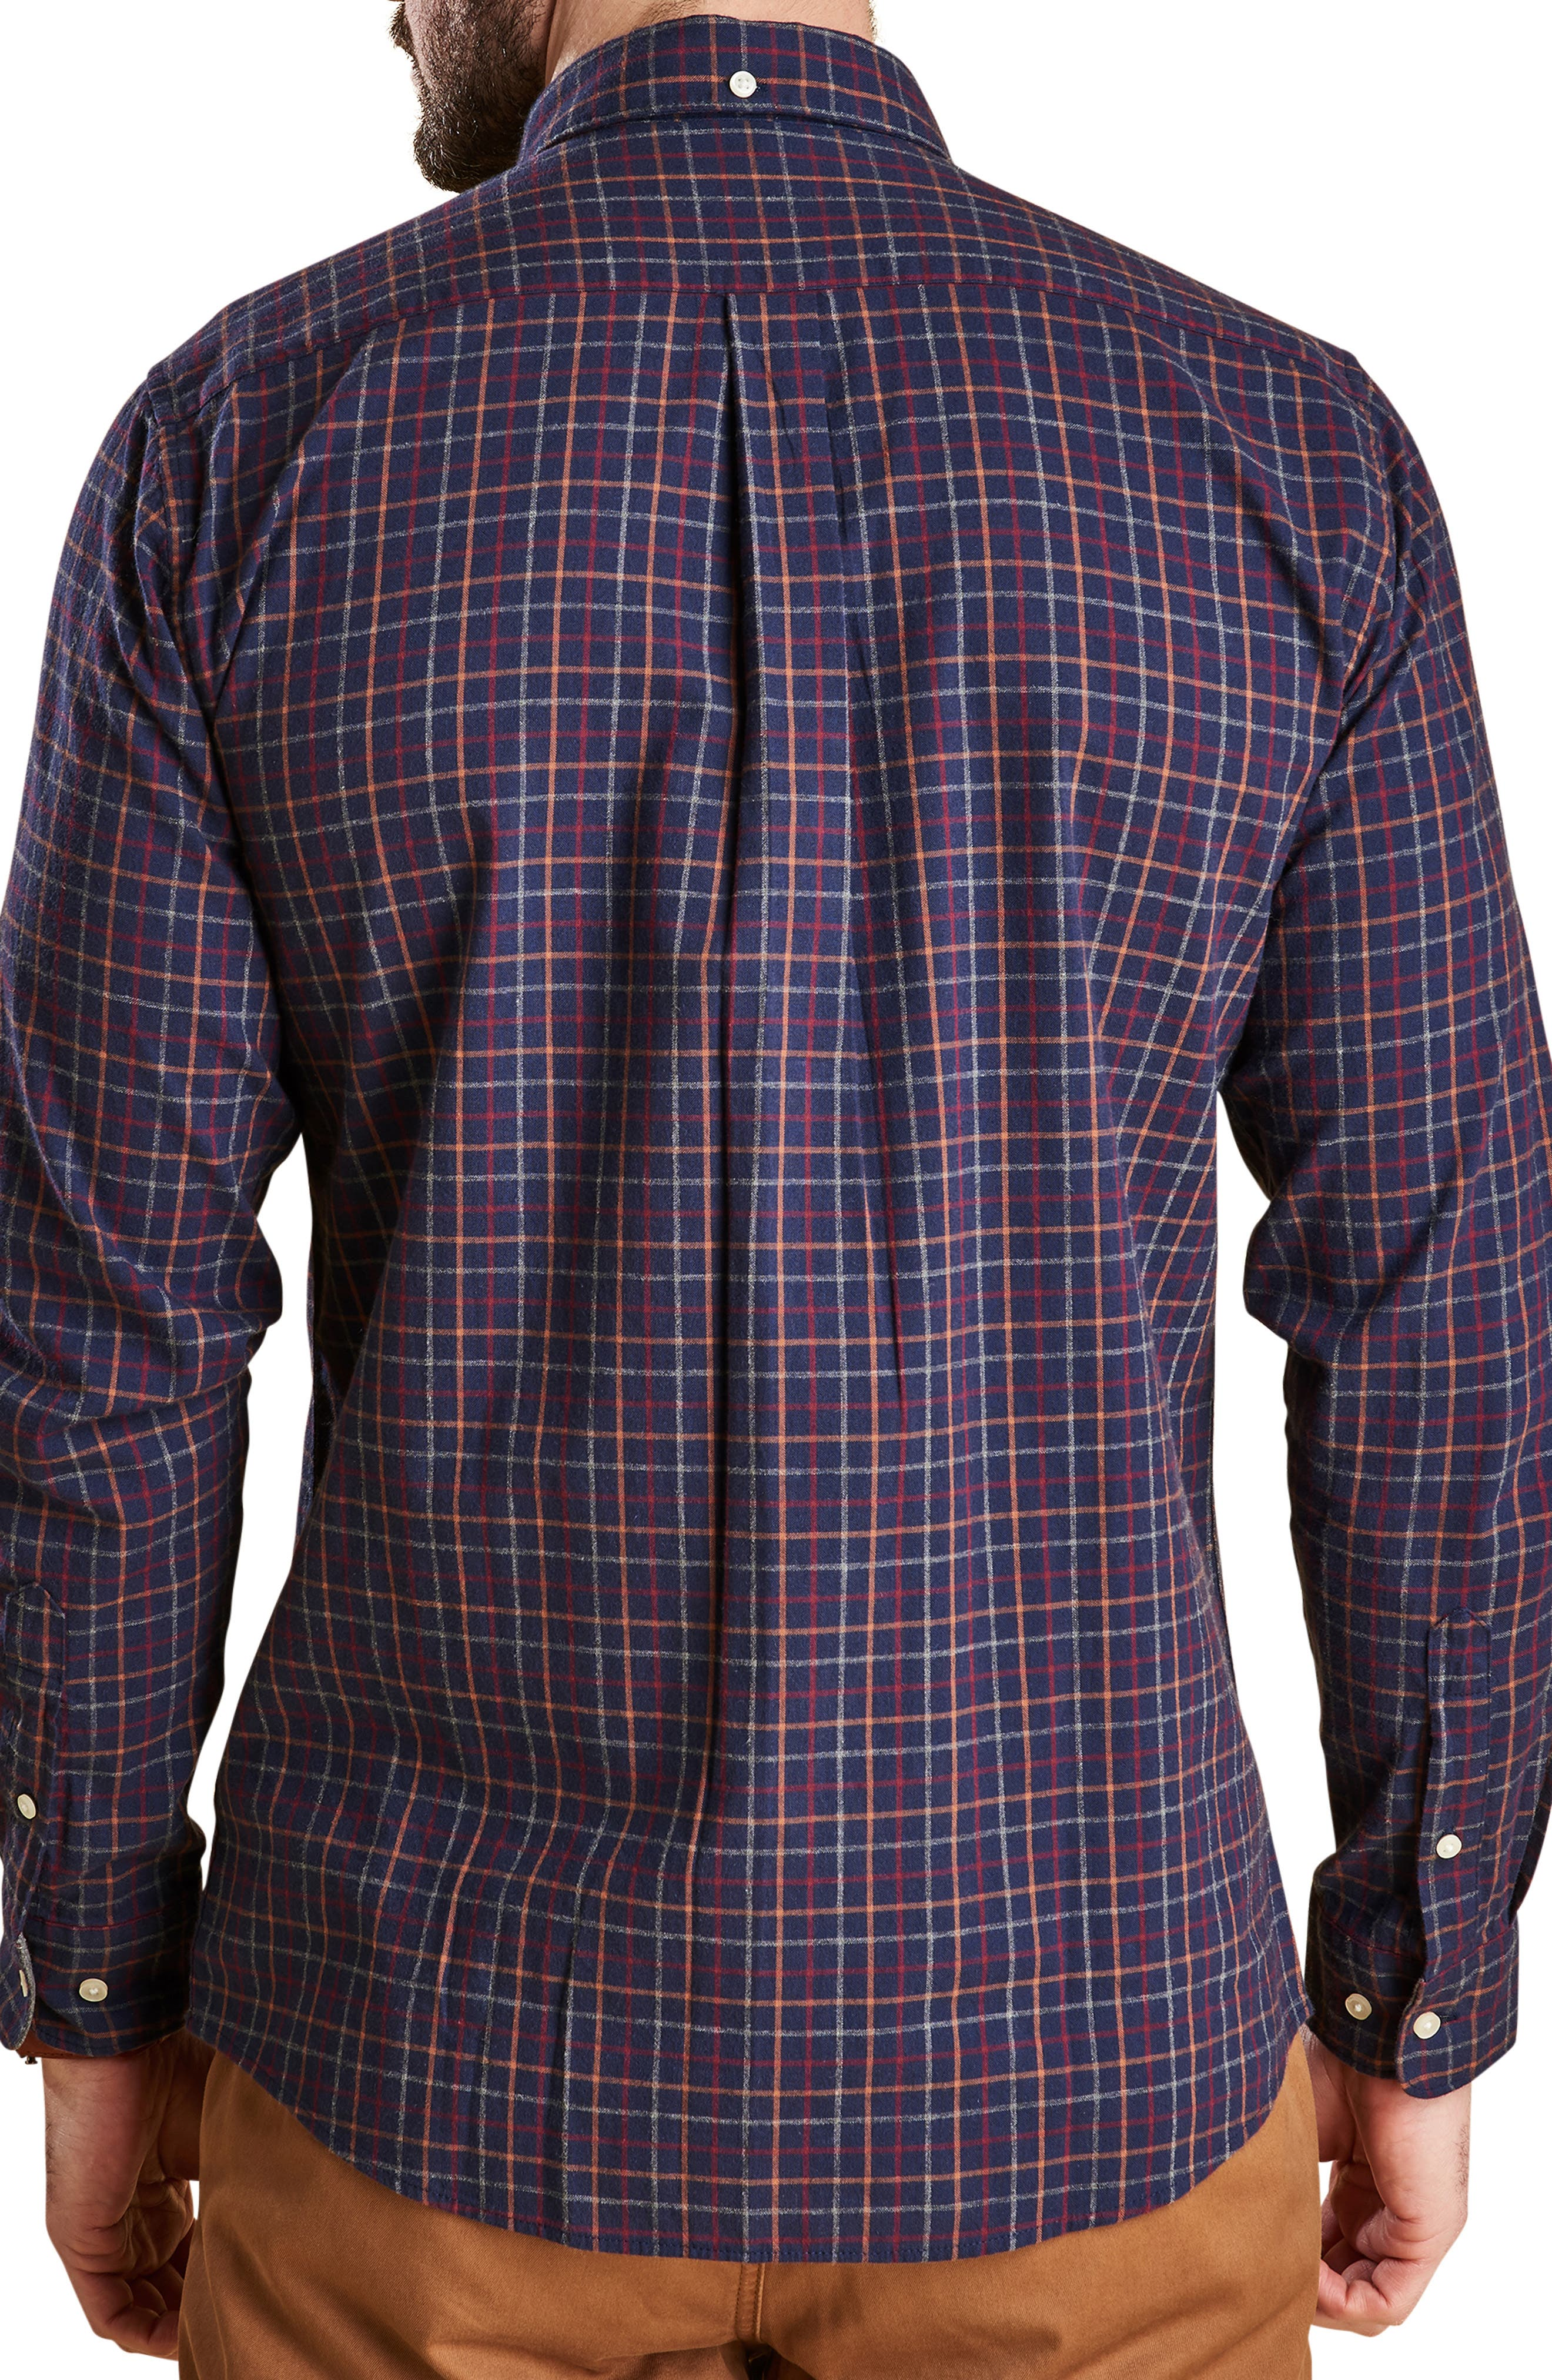 Endsleigh Tattersall Cotton Flannel Shirt,                             Alternate thumbnail 3, color,                             410